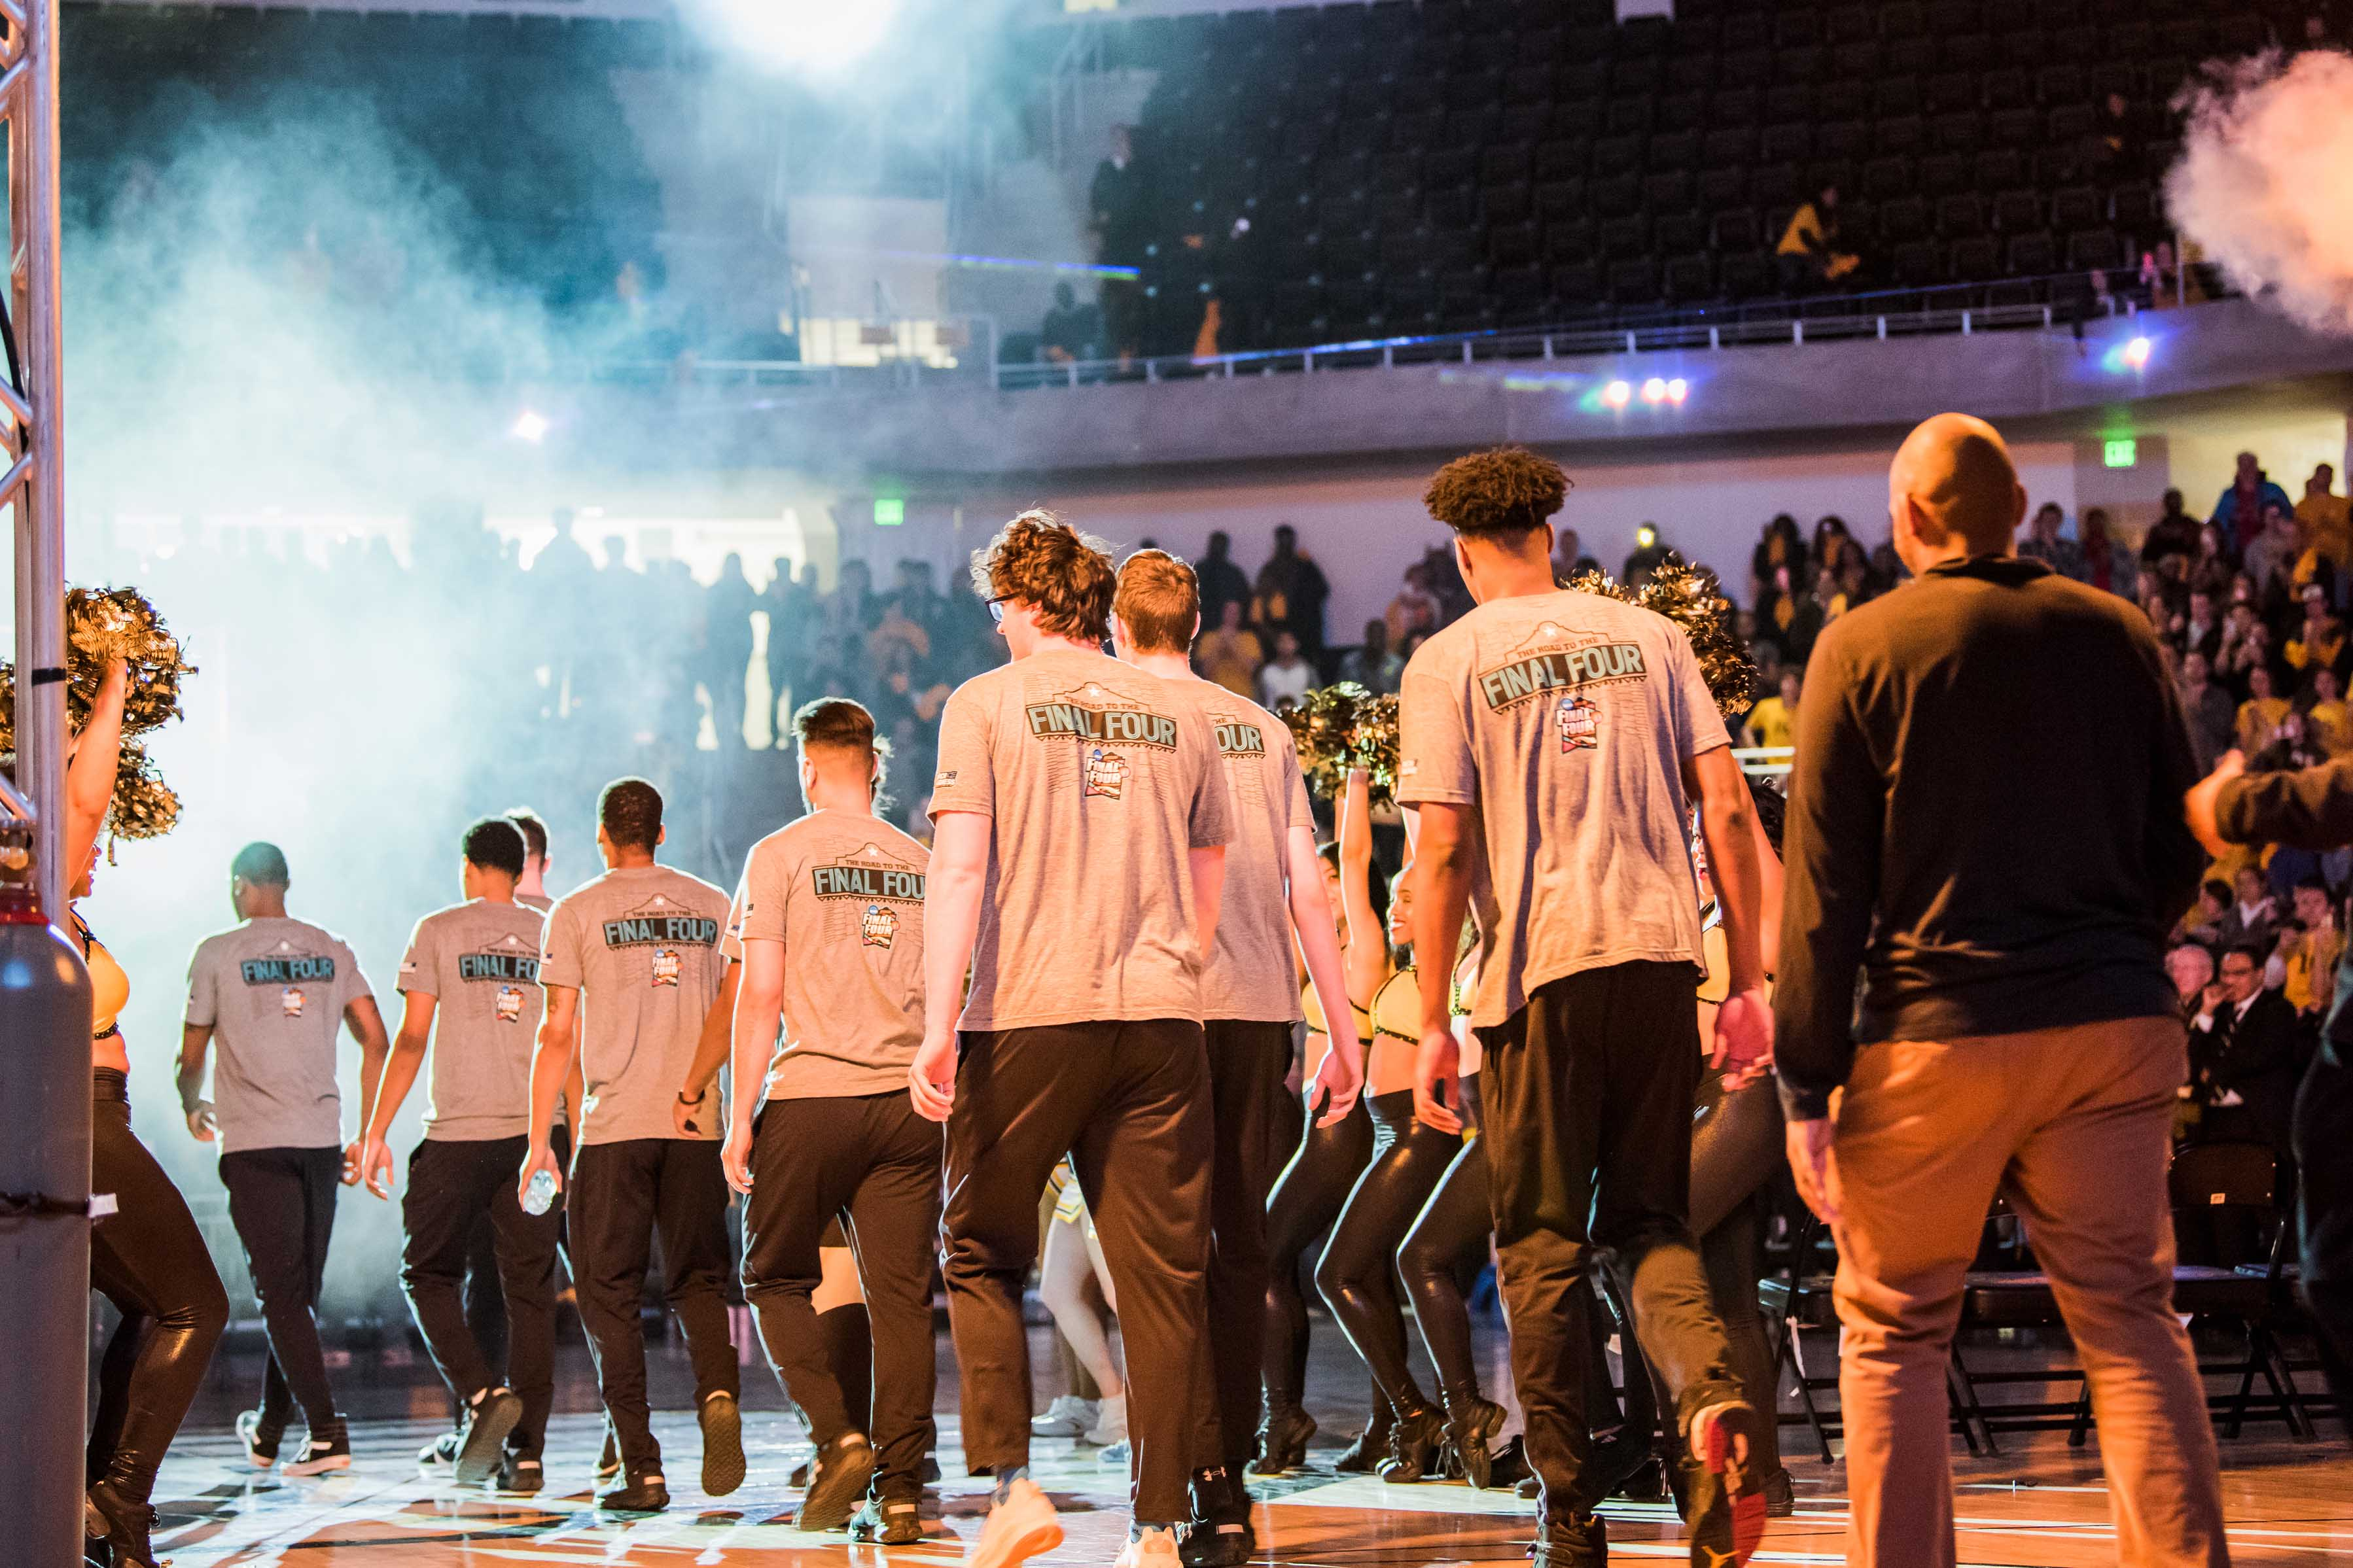 Men's basketball team walks out onto court with smoke